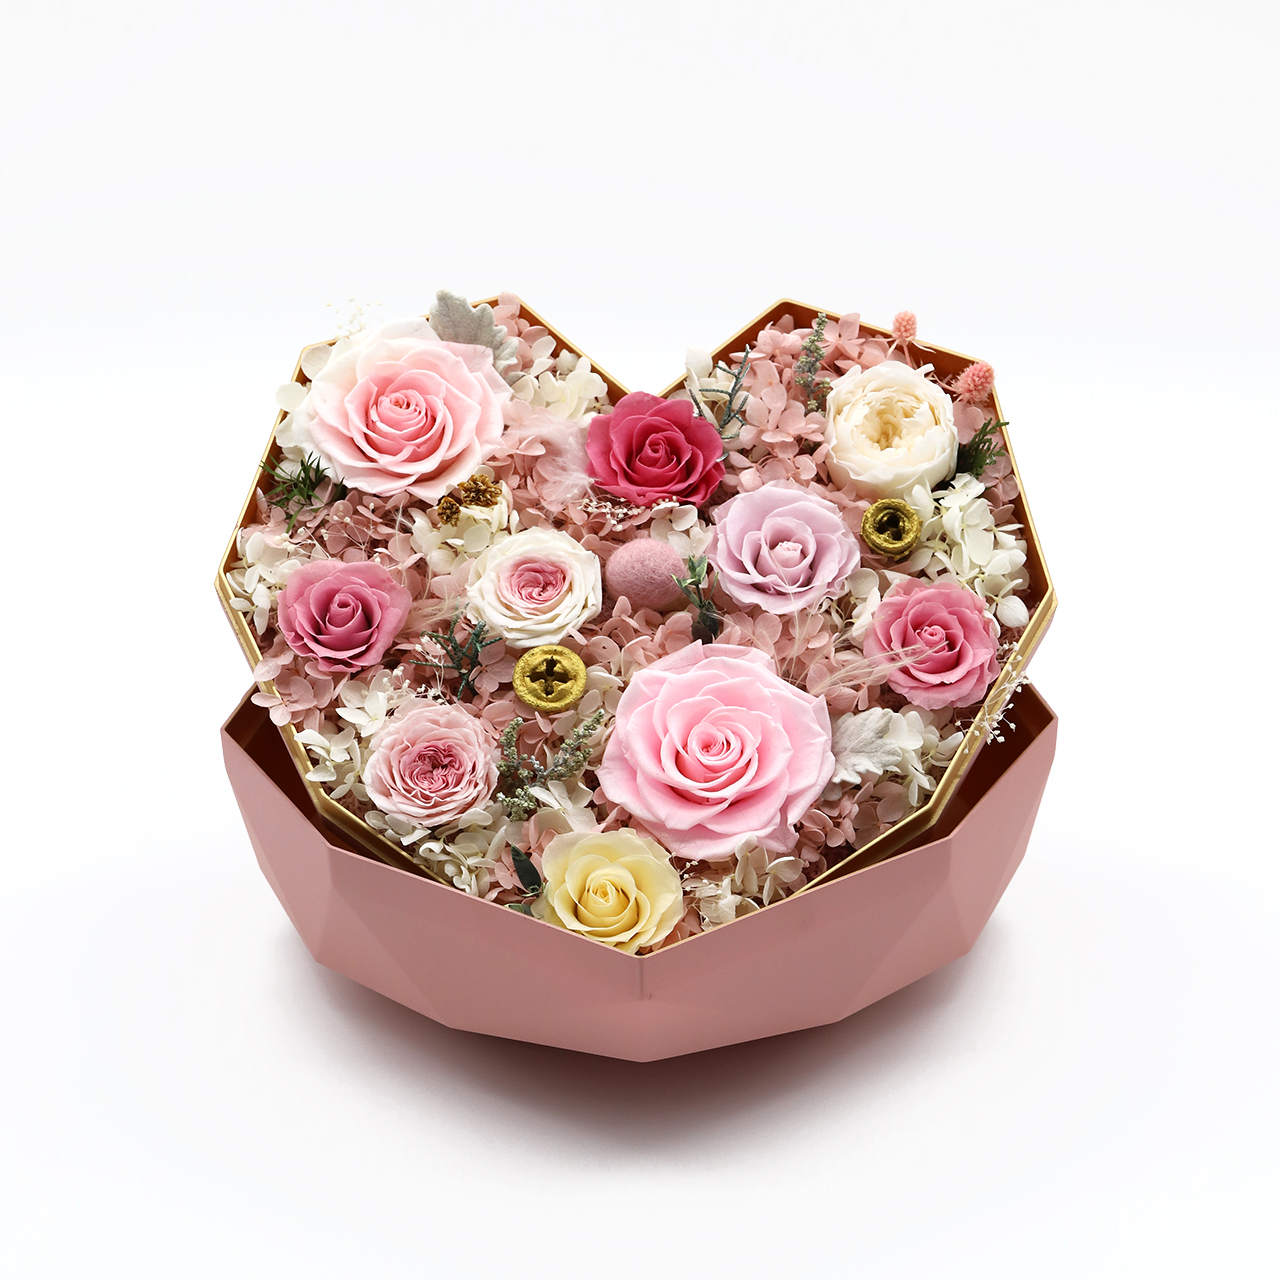 Valentine Surprise Flower Gifts Box Practical Ideas For Girlfriend Buy Flower Gift Gift Box Valentine Gifts Product On Alibaba Com